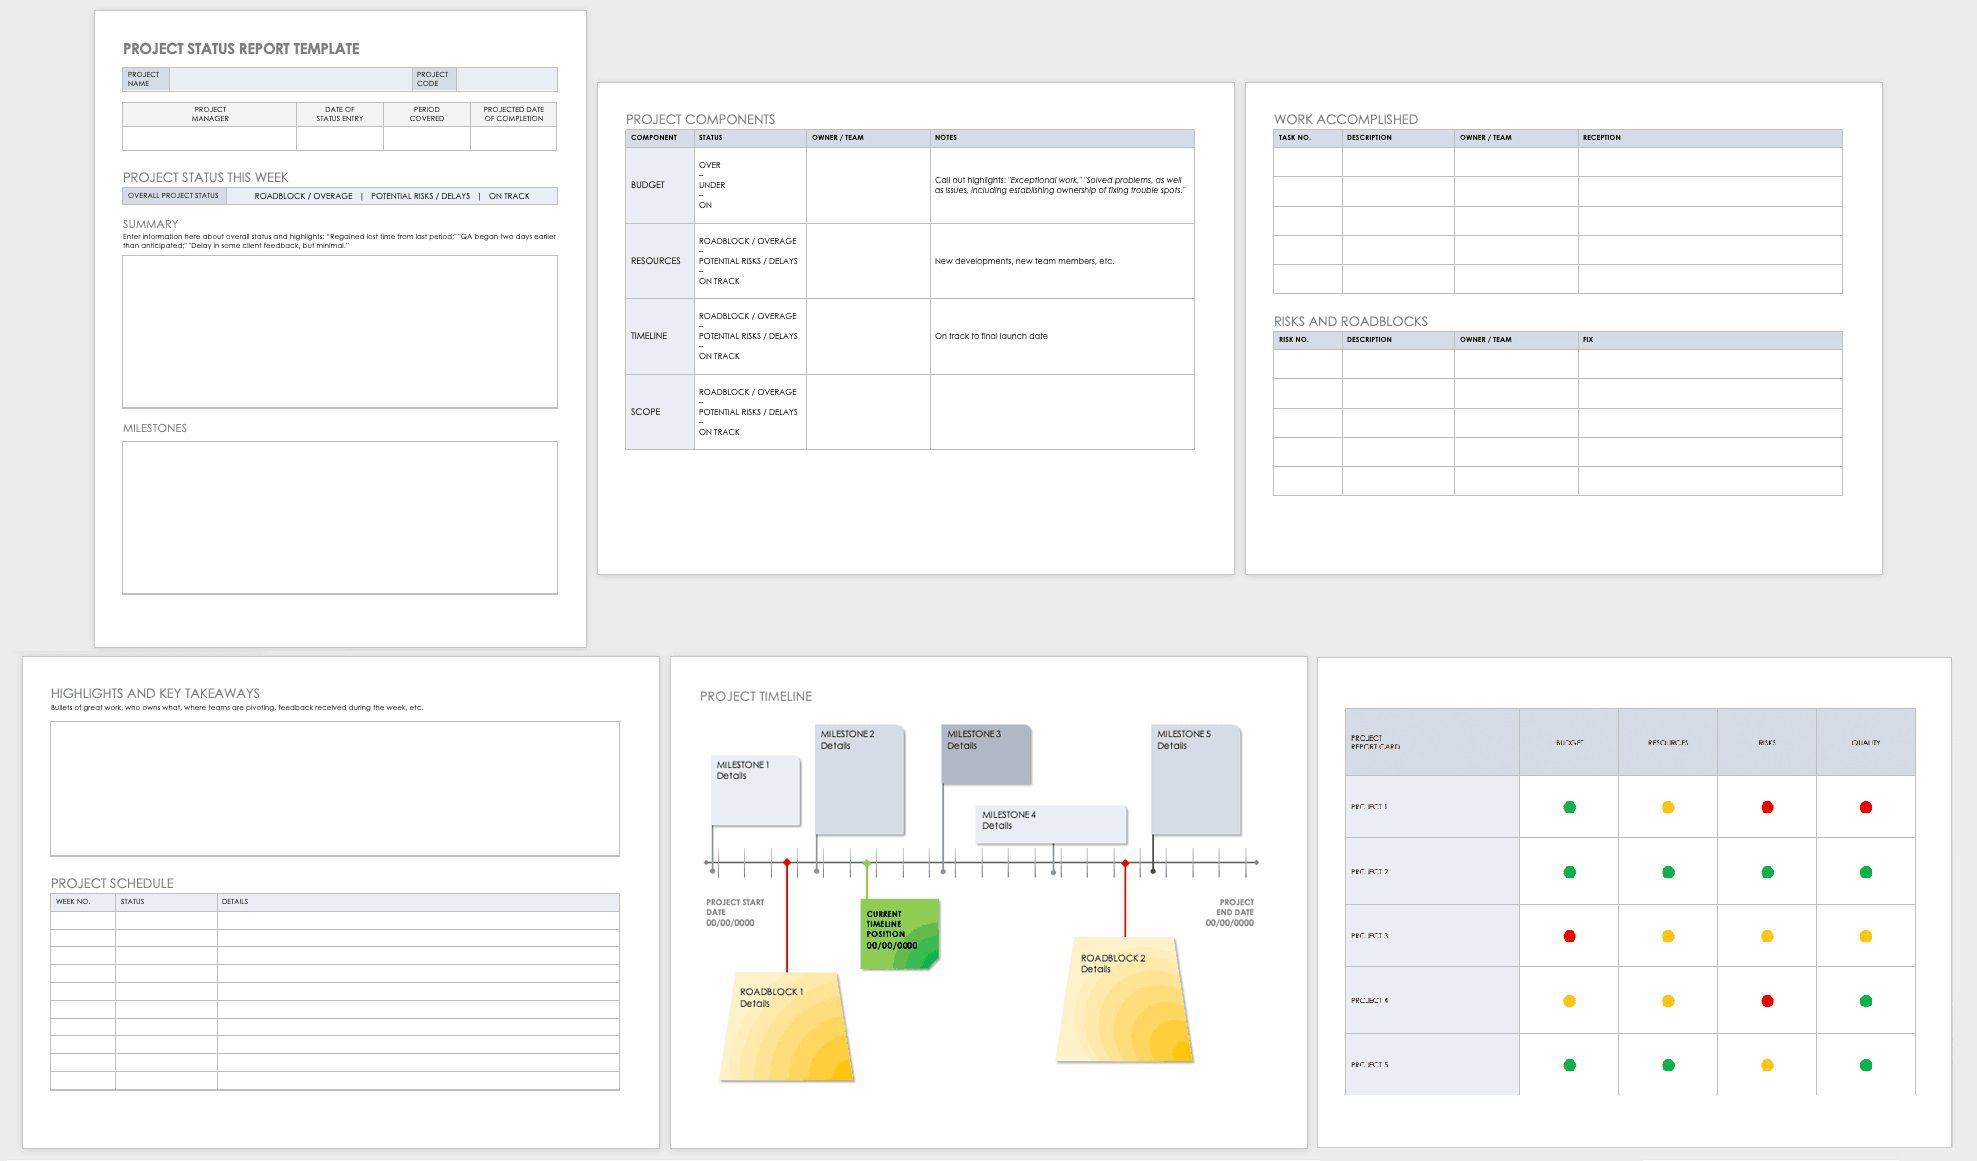 003 Shocking Project Management Statu Report Template Photo  Format Ppt WordFull